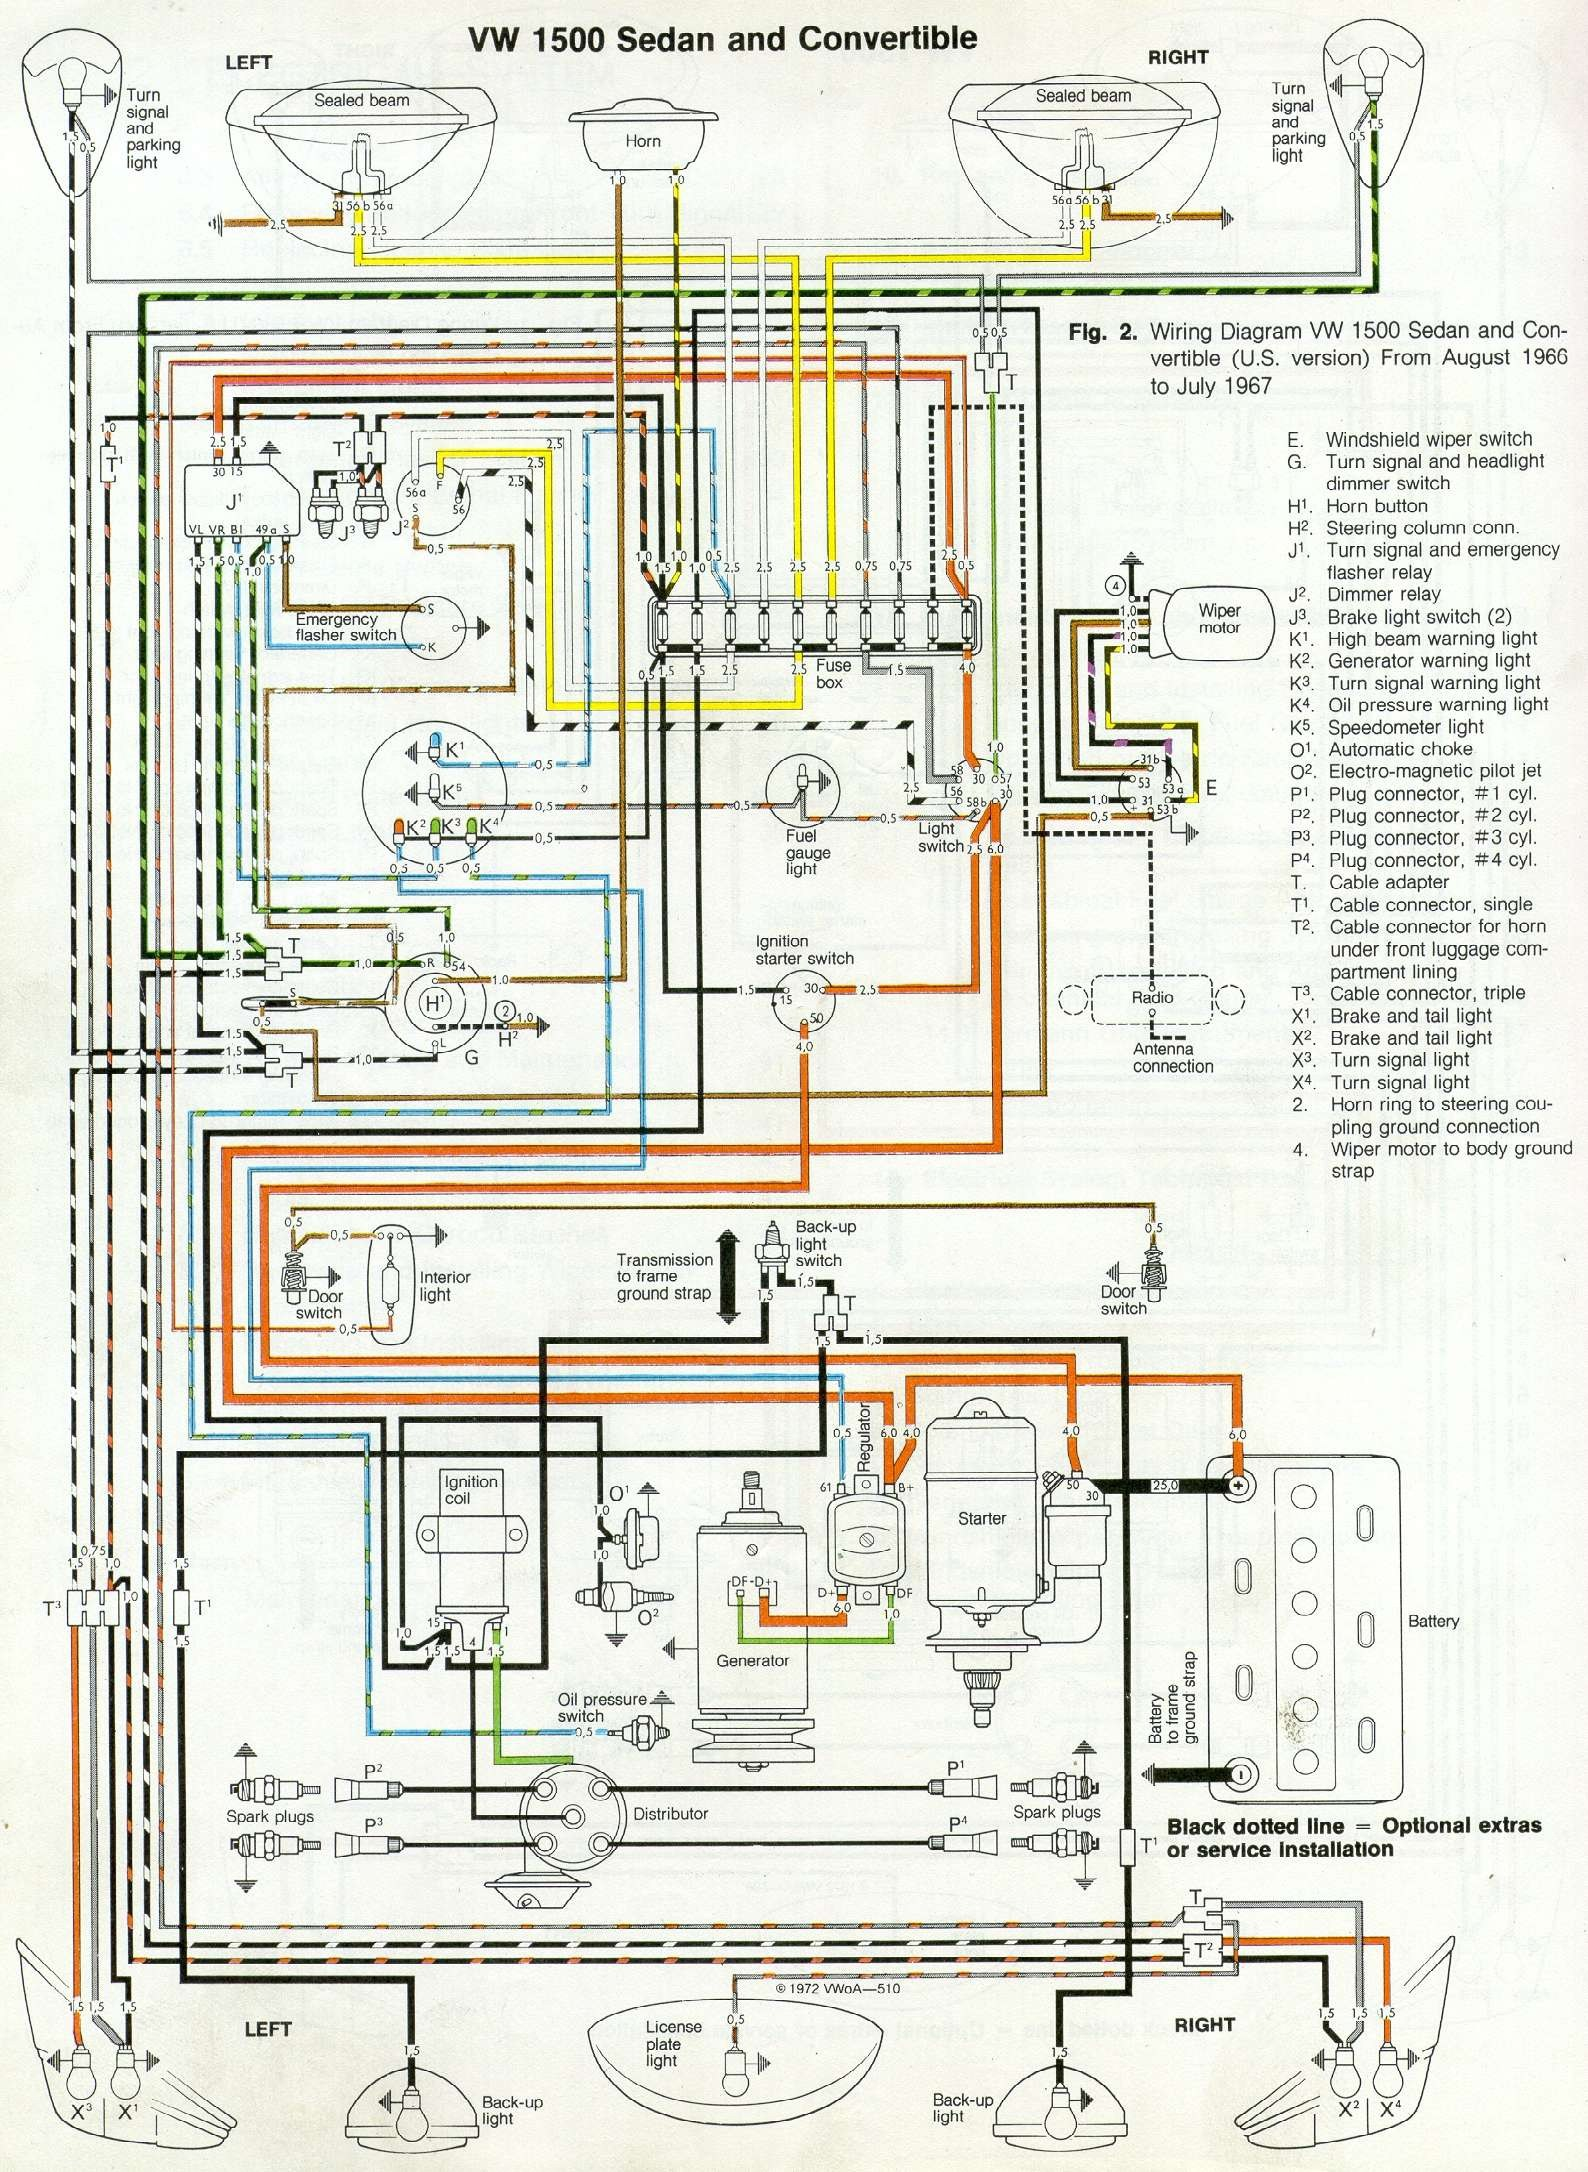 1973 vw super beetle wiring diagram 1973 image wiring diagram 68 vw beetle wiring auto wiring diagram schematic on 1973 vw super beetle wiring